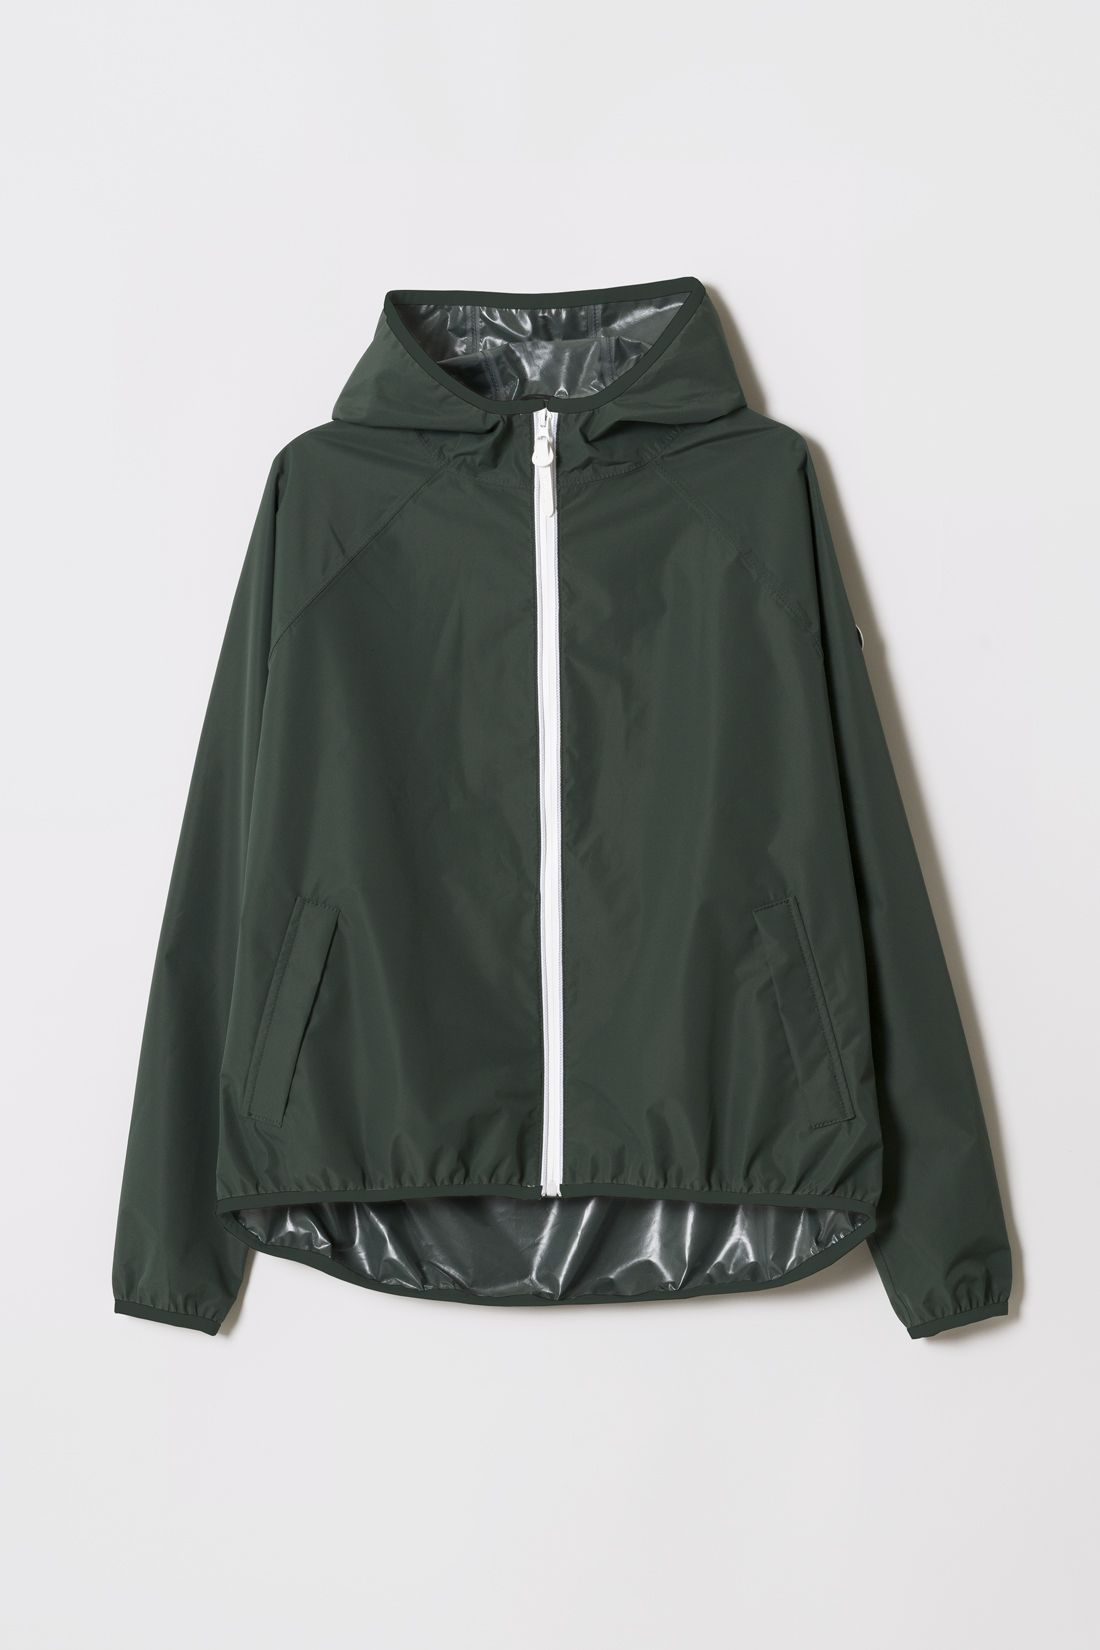 t3089 wolk olive 0 pmcl